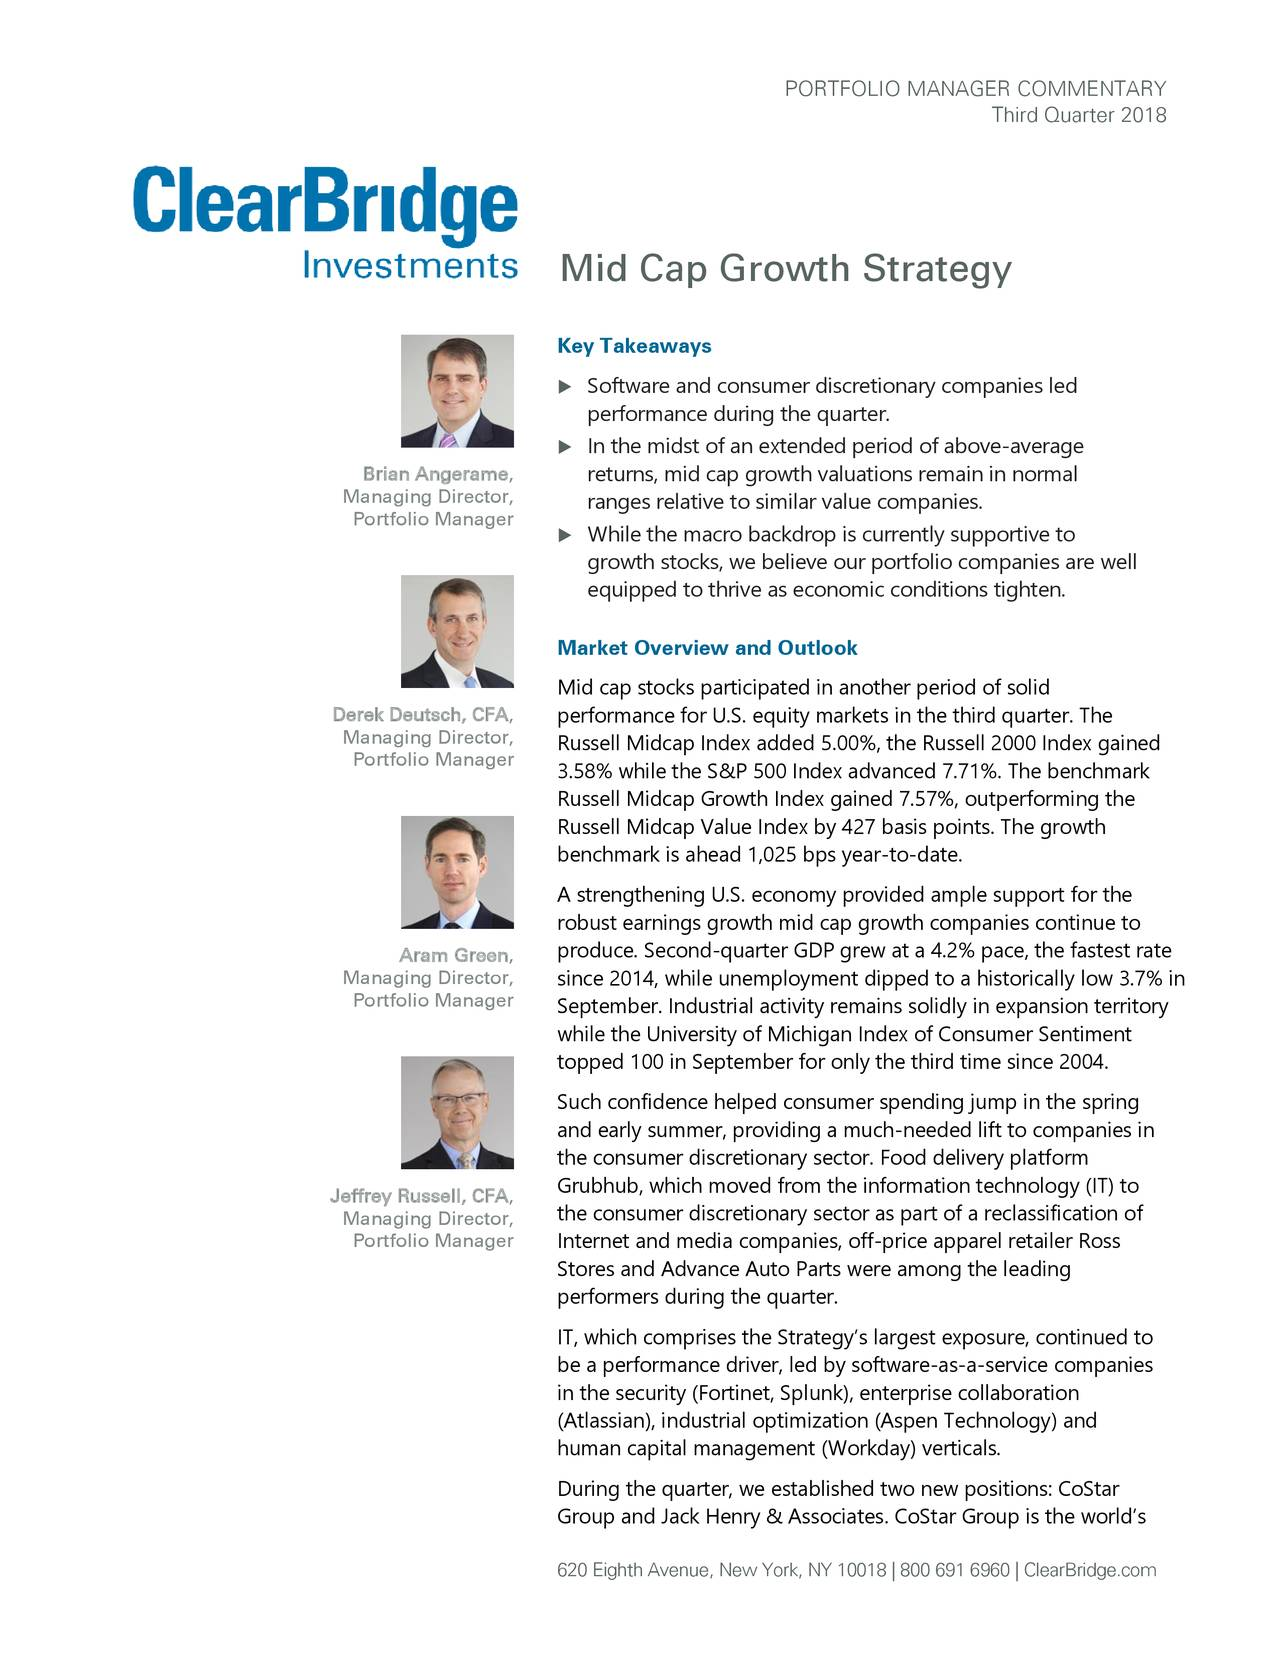 ClearBridge Mid Cap Growth Strategy Portfolio Manager